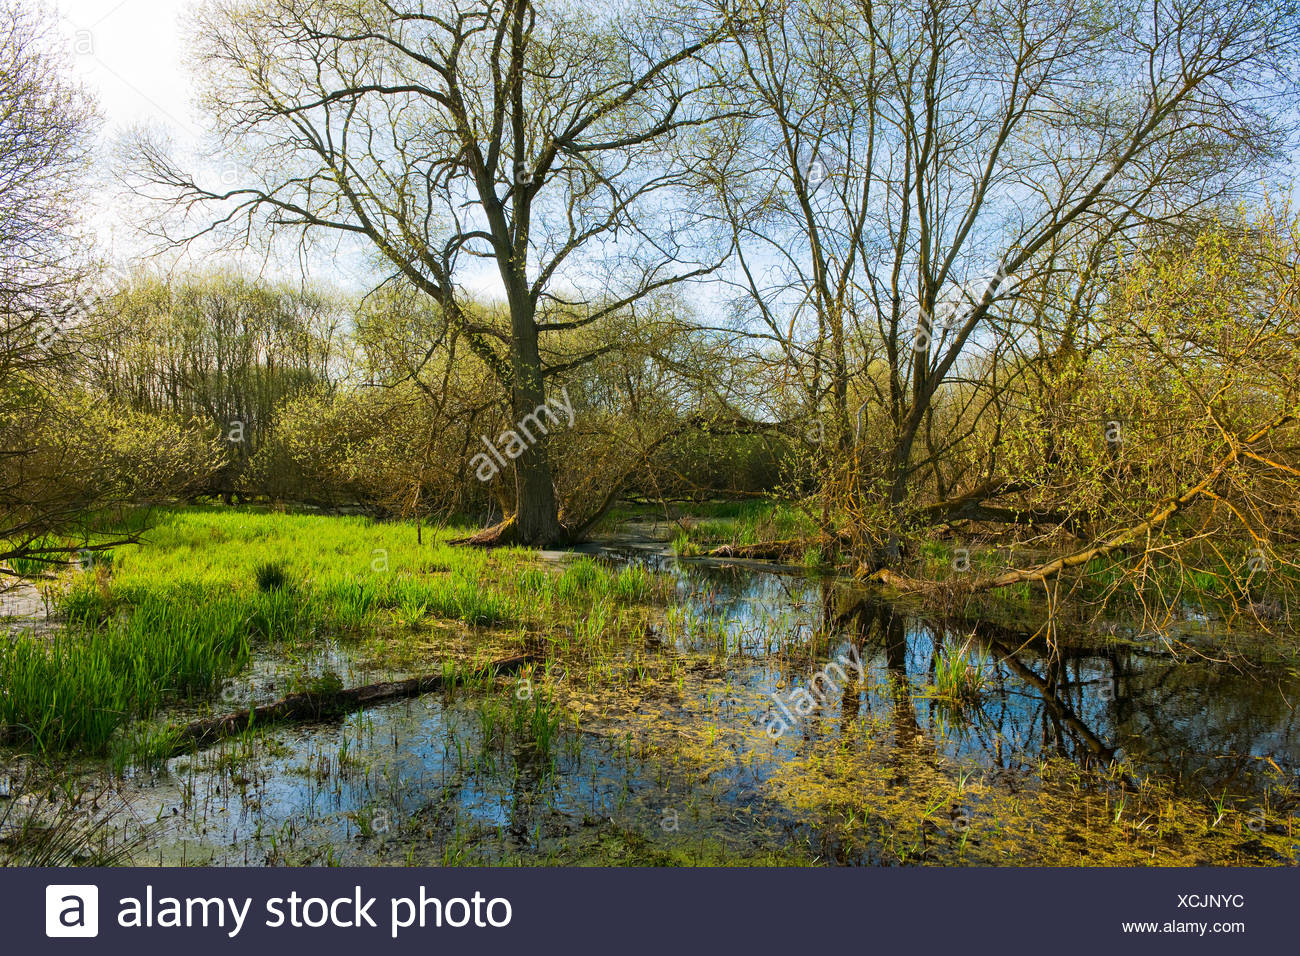 Softwood floodplain with willow (Salix sp.) trees in spring, Drömling nature reserve, Lower Saxony, Germany - Stock Image